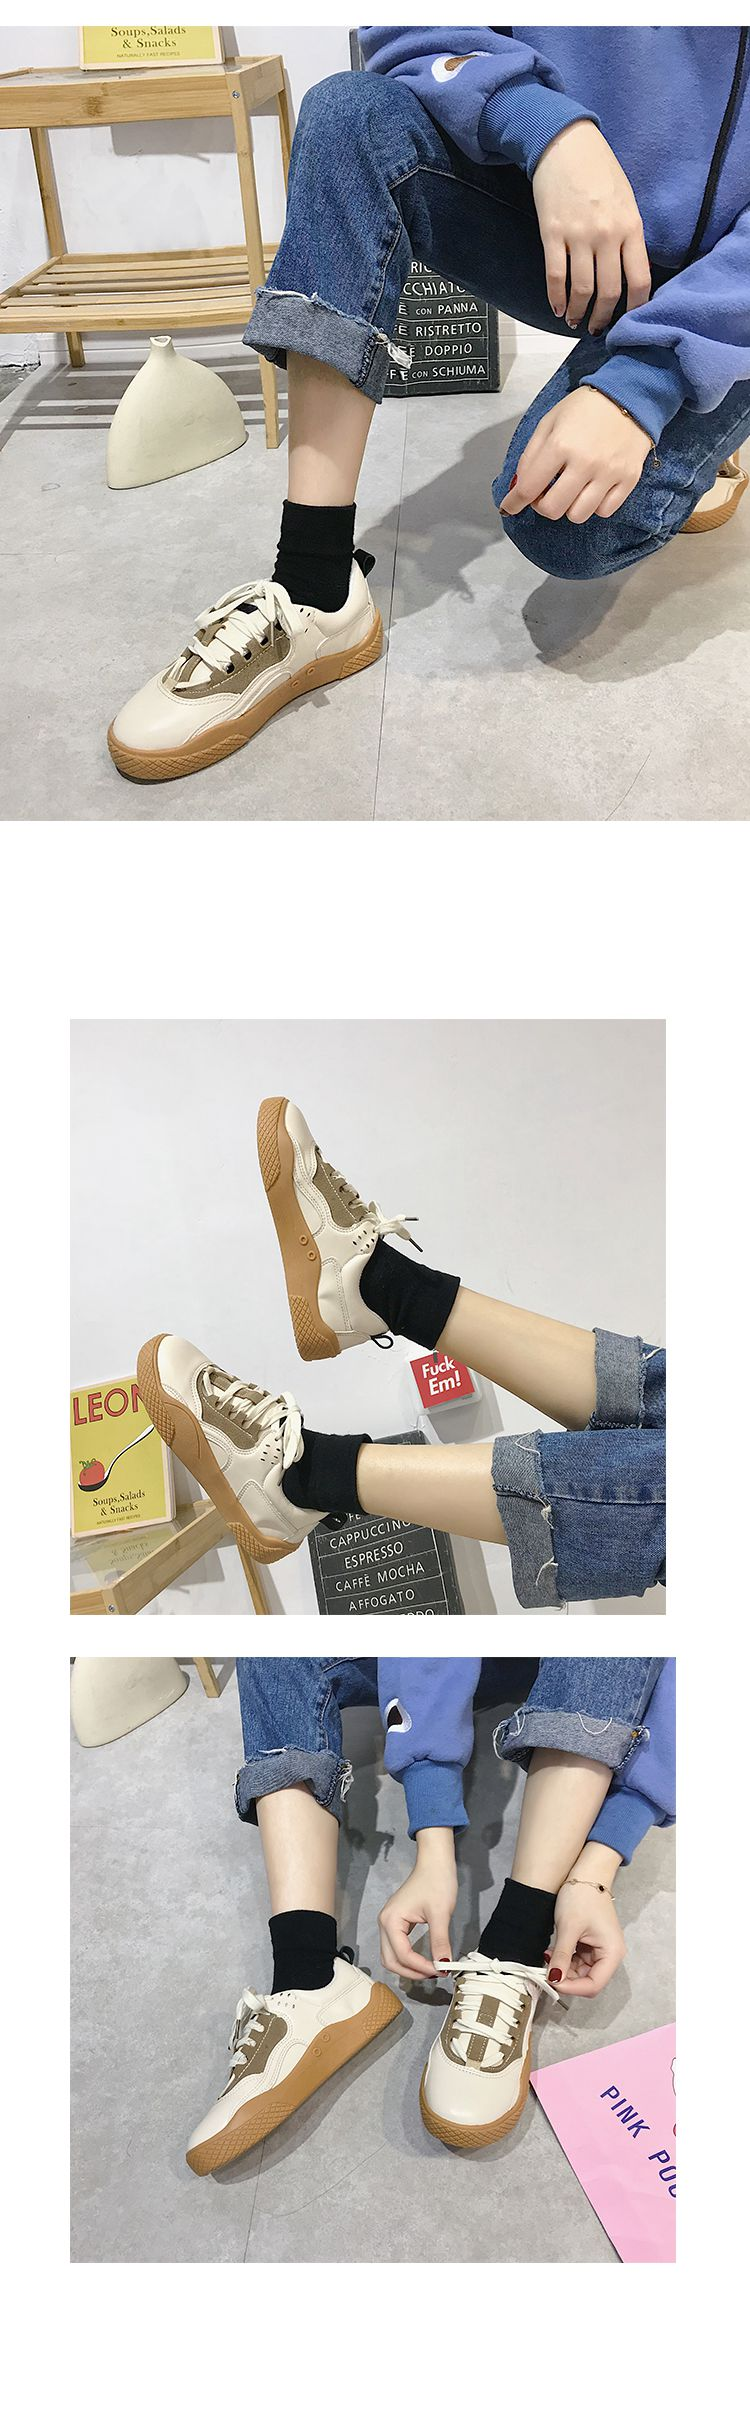 2019 Women Sneakers Leather Hook Loop All Match Female Casual Shoes Concise Style Lady White Shoes Students New Fashion 35-39 25